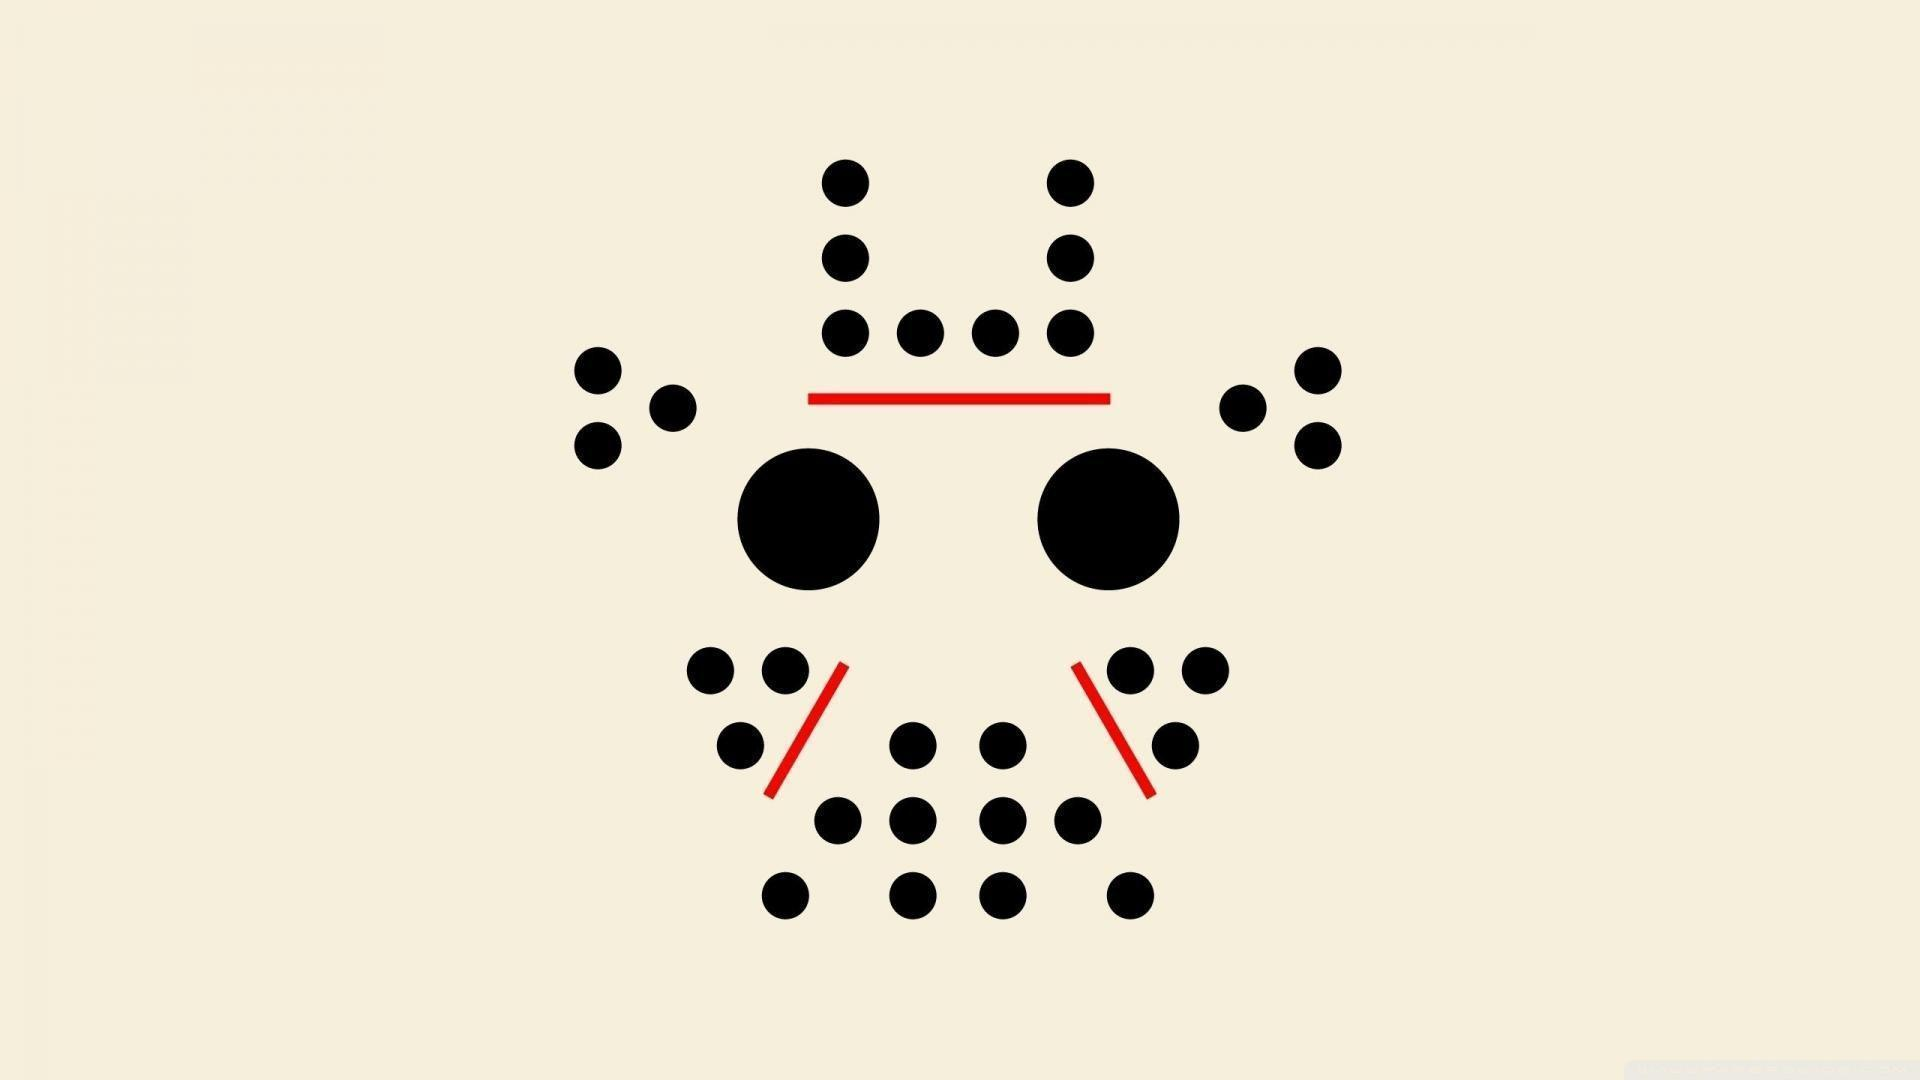 Minimalistic friday the 13th dots jason voorhees faces wallpapers